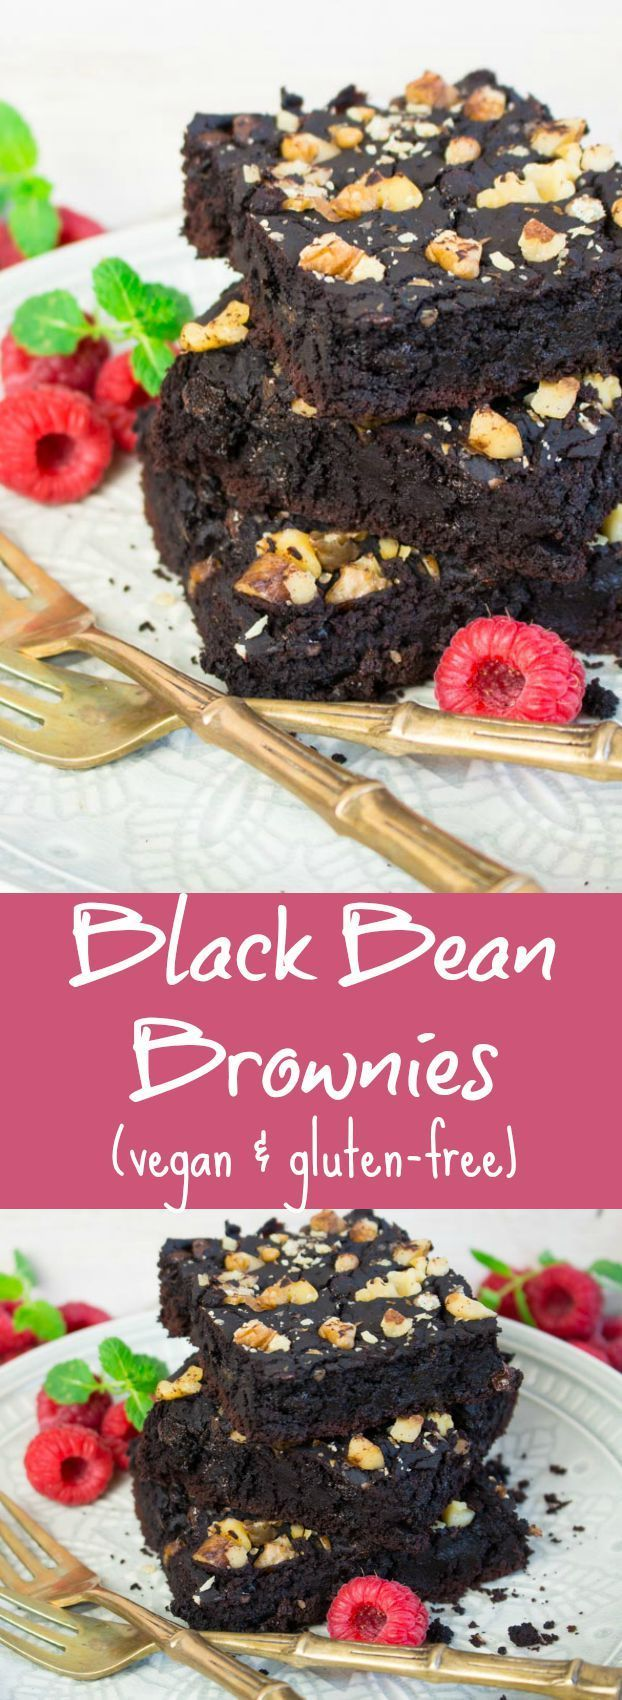 These vegan black bean brownies are not only super fudgy and chocolatey but also gluten-free and really easy to make